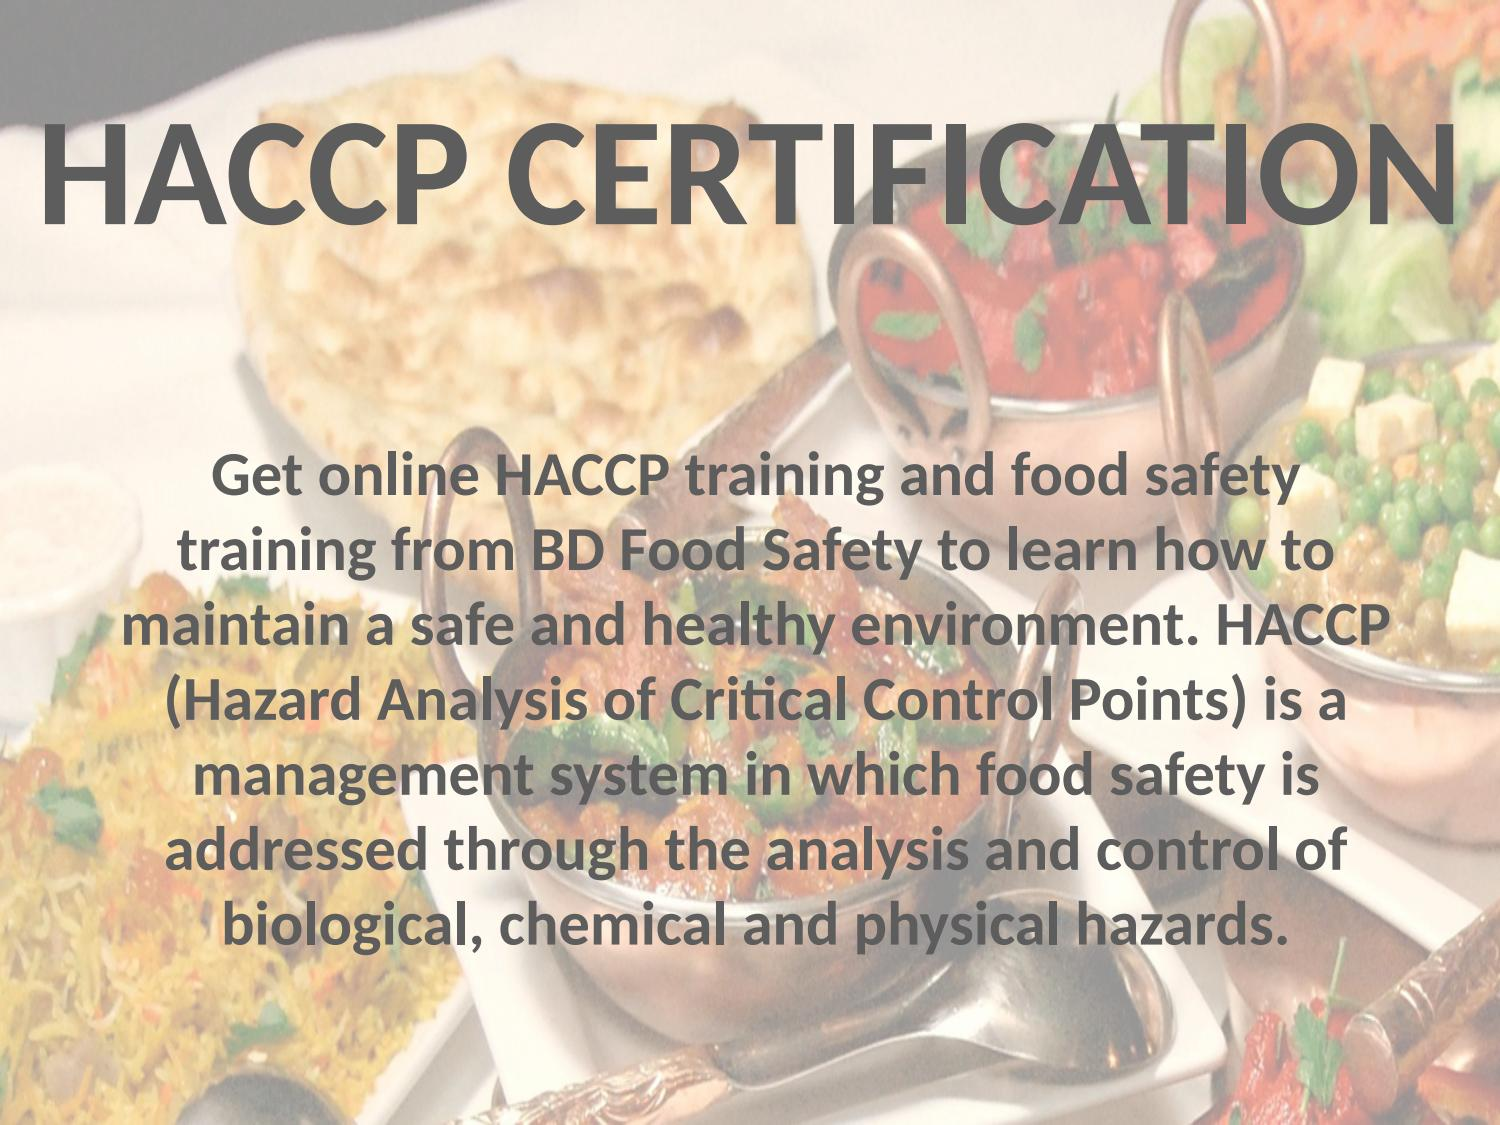 HACCP – The Best Practice to Ensure Food Safety  by BD Food